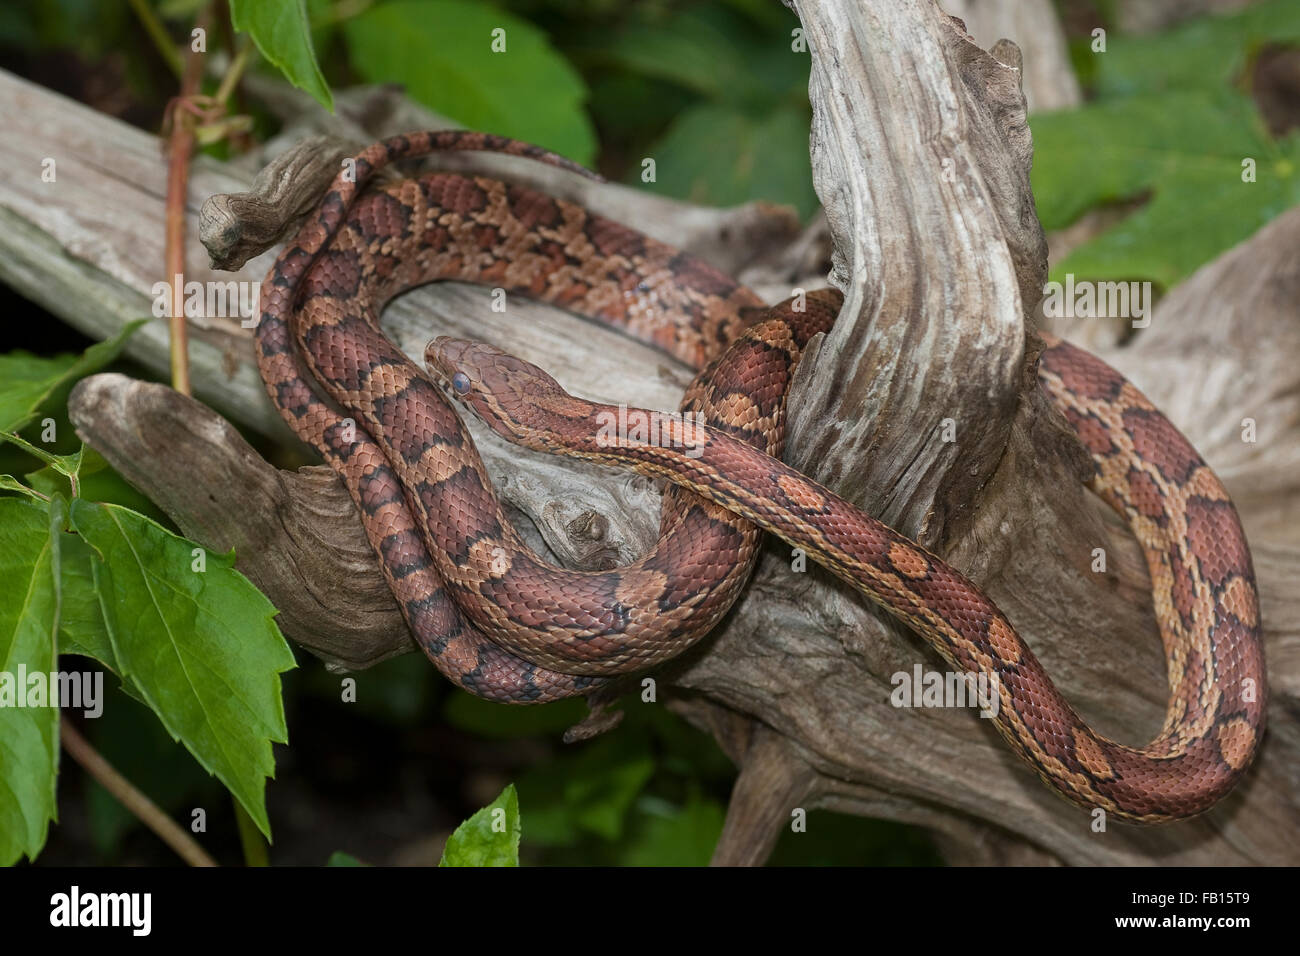 Corn Snake, Red Rat Snake, Kornnatter, Korn-Natter, Natter, Pantherophis guttatus Stock Photo